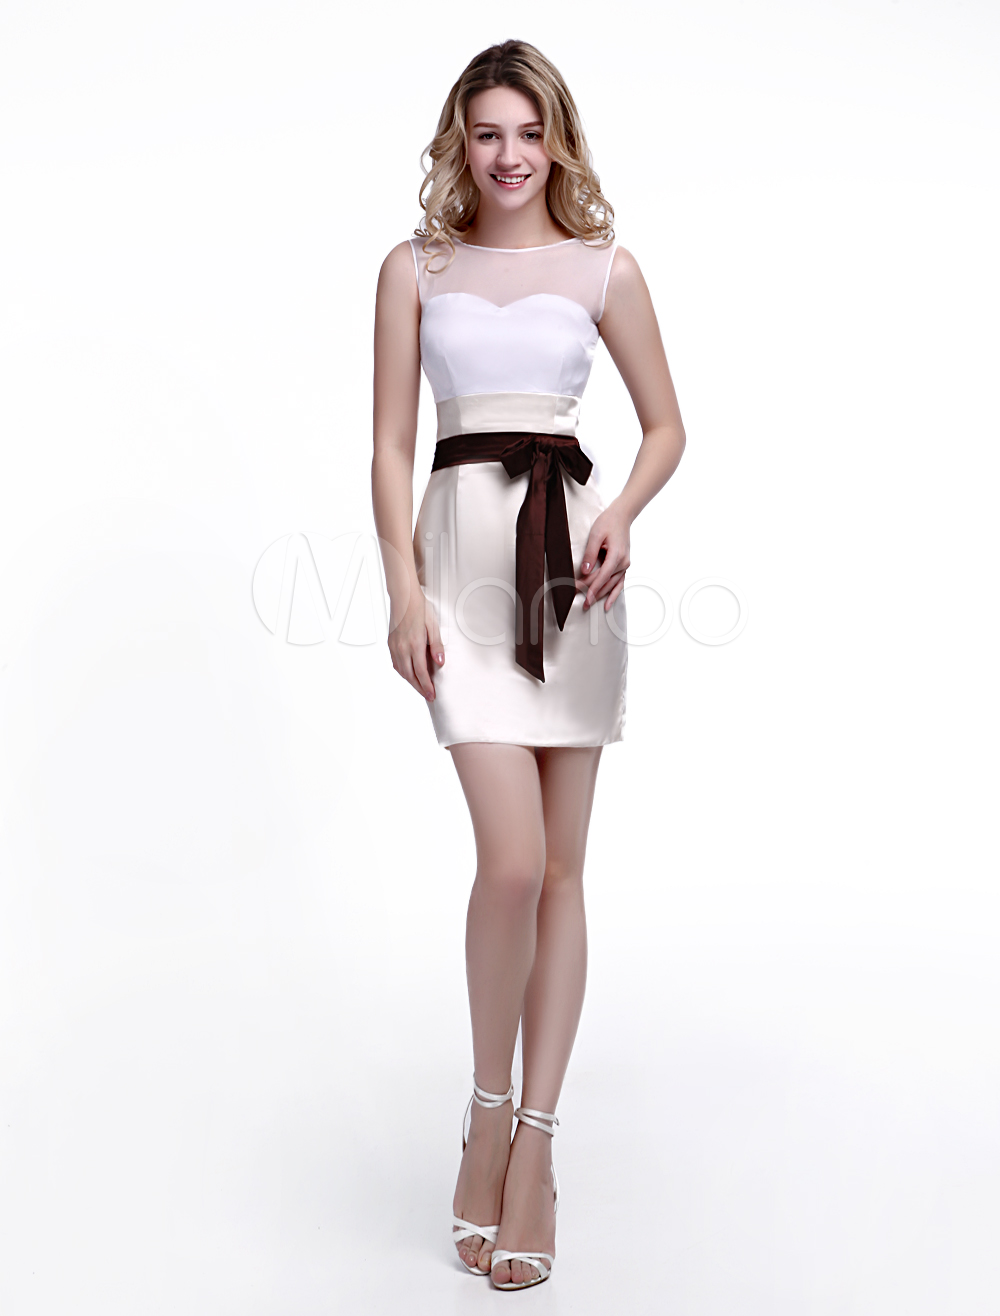 Buy Champagne Wedding Guest Dress Sheath with Jewel Neck Bow and Satin Skirt Wedding Guest Dress Milanoo for $99.99 in Milanoo store